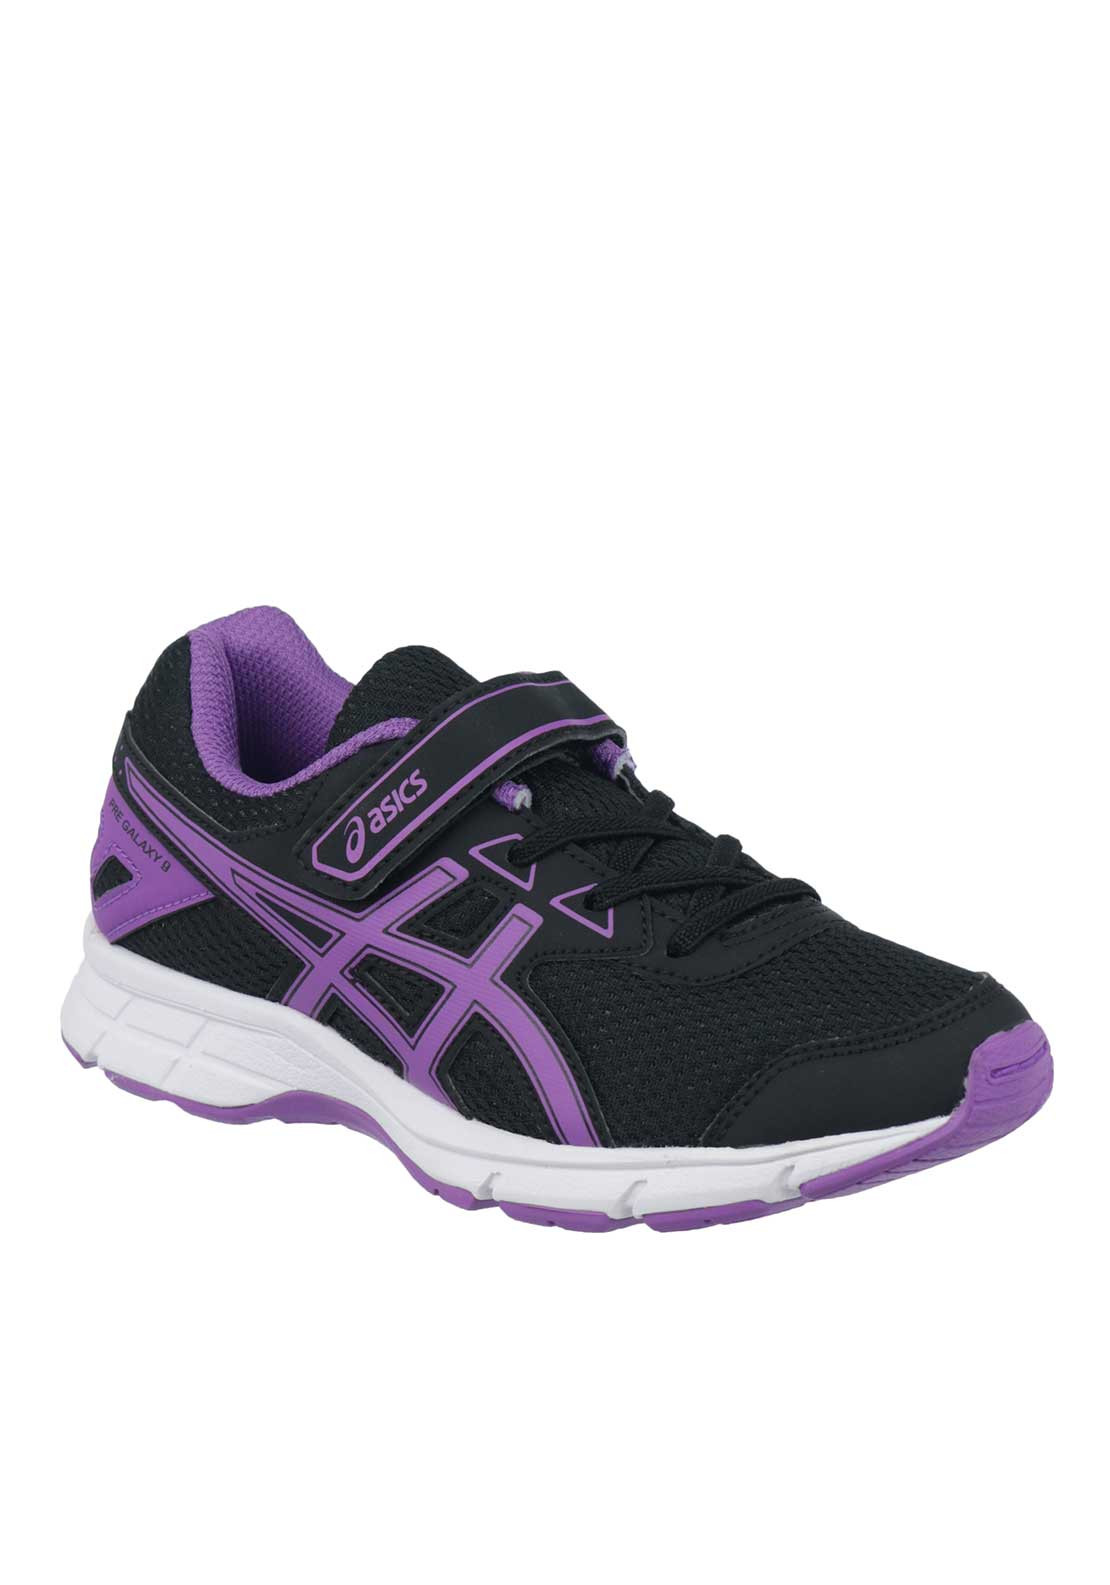 Asics Girls Pre-Galaxy 9 Velcro Runners, Black and Purple